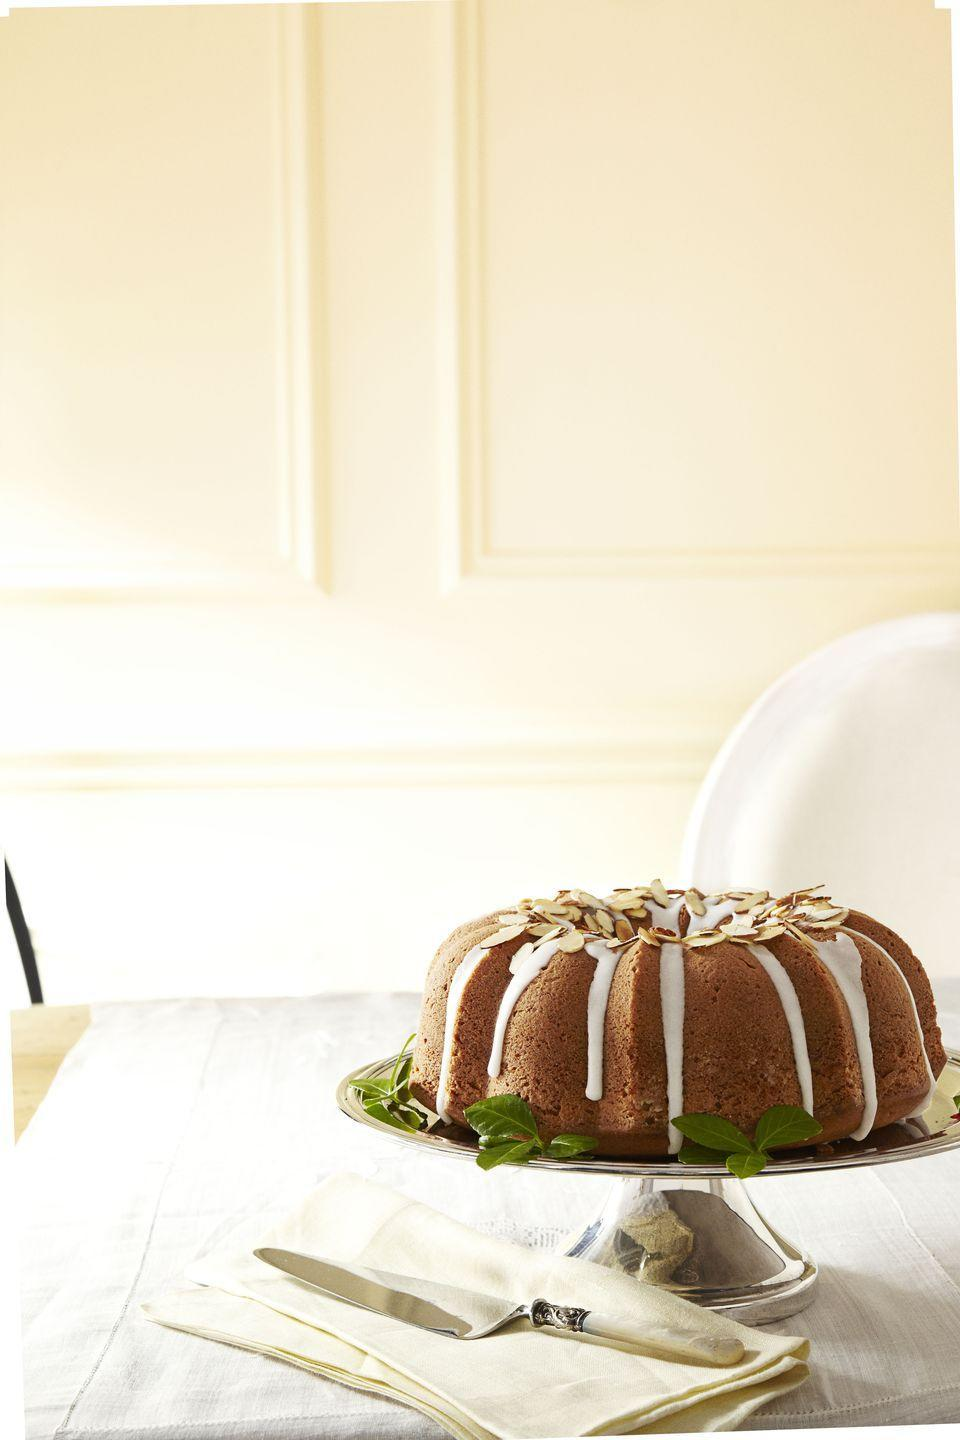 "<p>Cranberries, lemon zest and warm cinnamon infuse this cake with wonderful fall flavors. </p><p><a href=""https://www.goodhousekeeping.com/food-recipes/a13774/cranberry-cake-almond-glaze-recipe-ghk1112/"" rel=""nofollow noopener"" target=""_blank"" data-ylk=""slk:Get the recipe for Cranberry Cake with Almond Glaze »"" class=""link rapid-noclick-resp""><em>Get the recipe for Cranberry Cake with Almond Glaze »</em></a></p>"